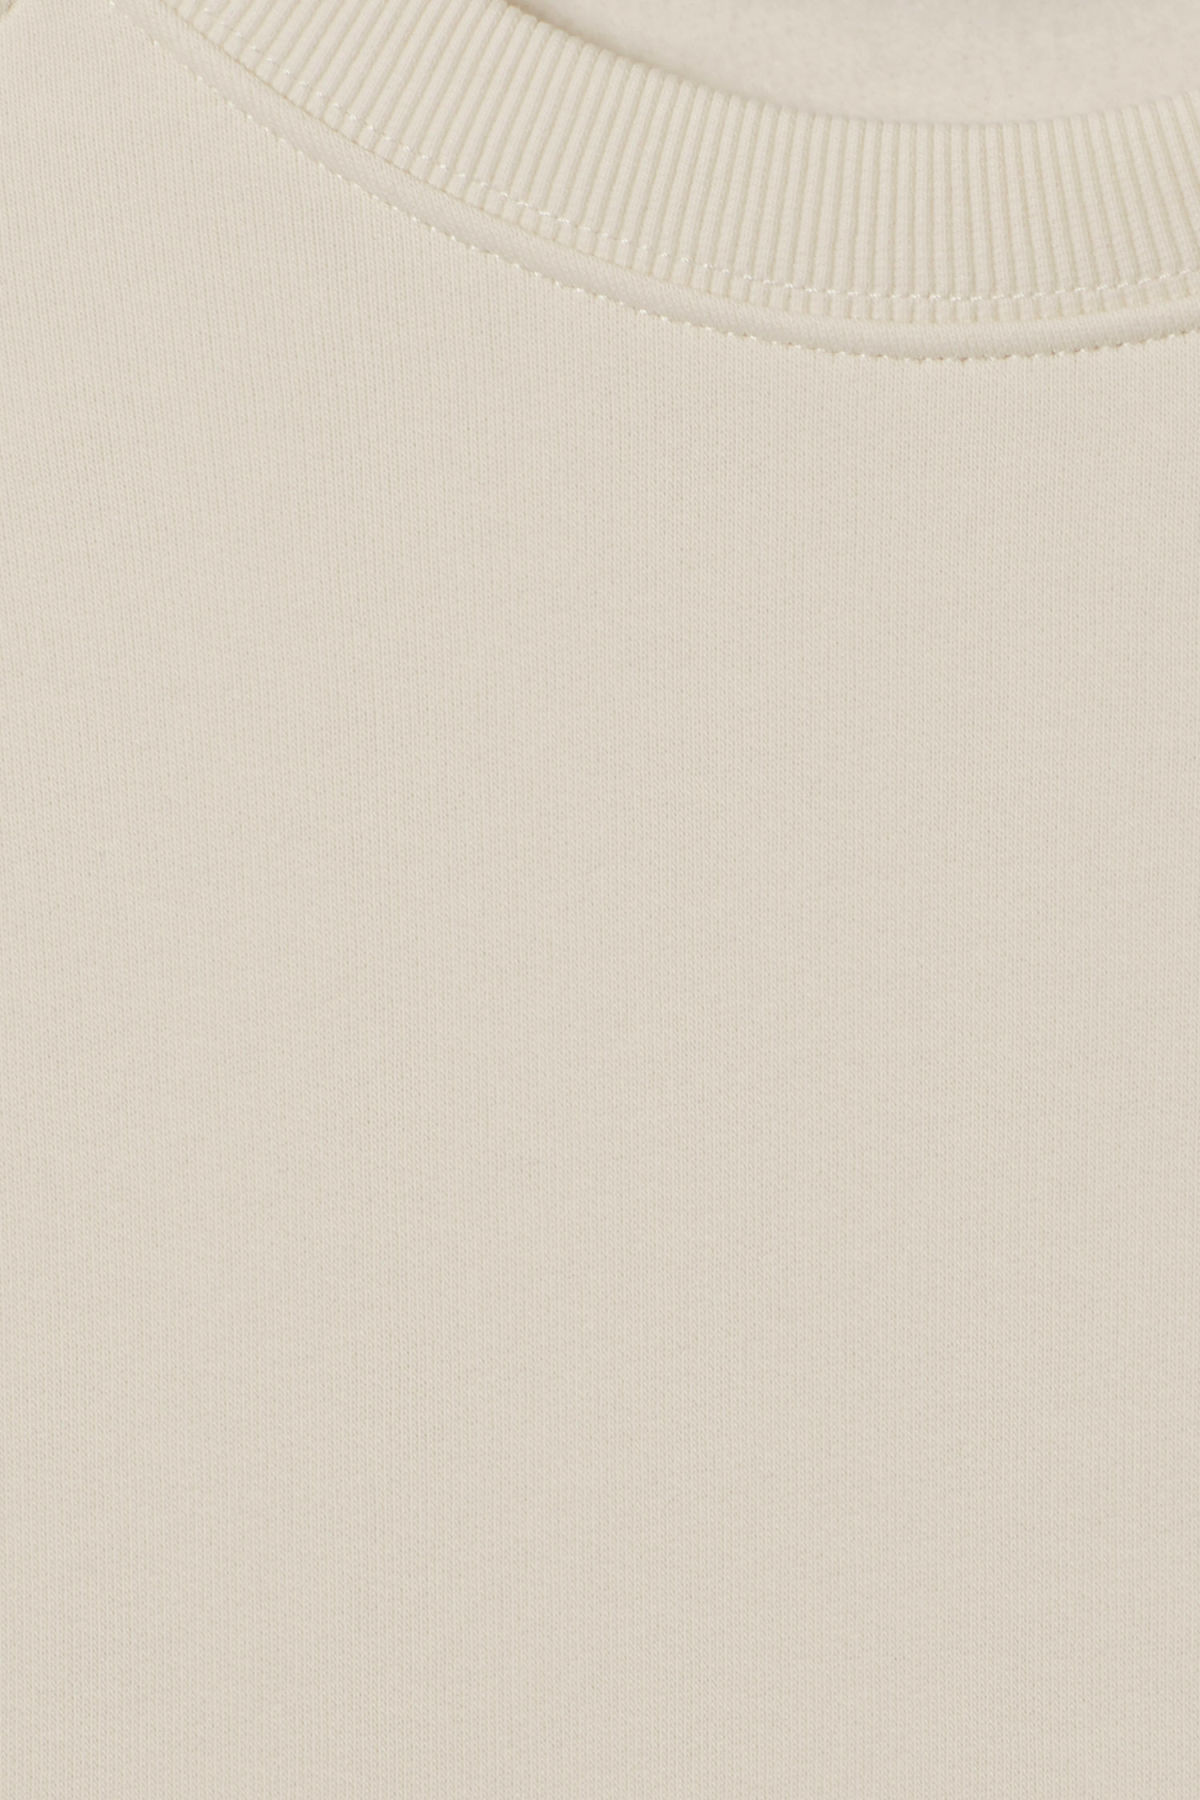 Detailed image of Weekday paris sweatshirt in white